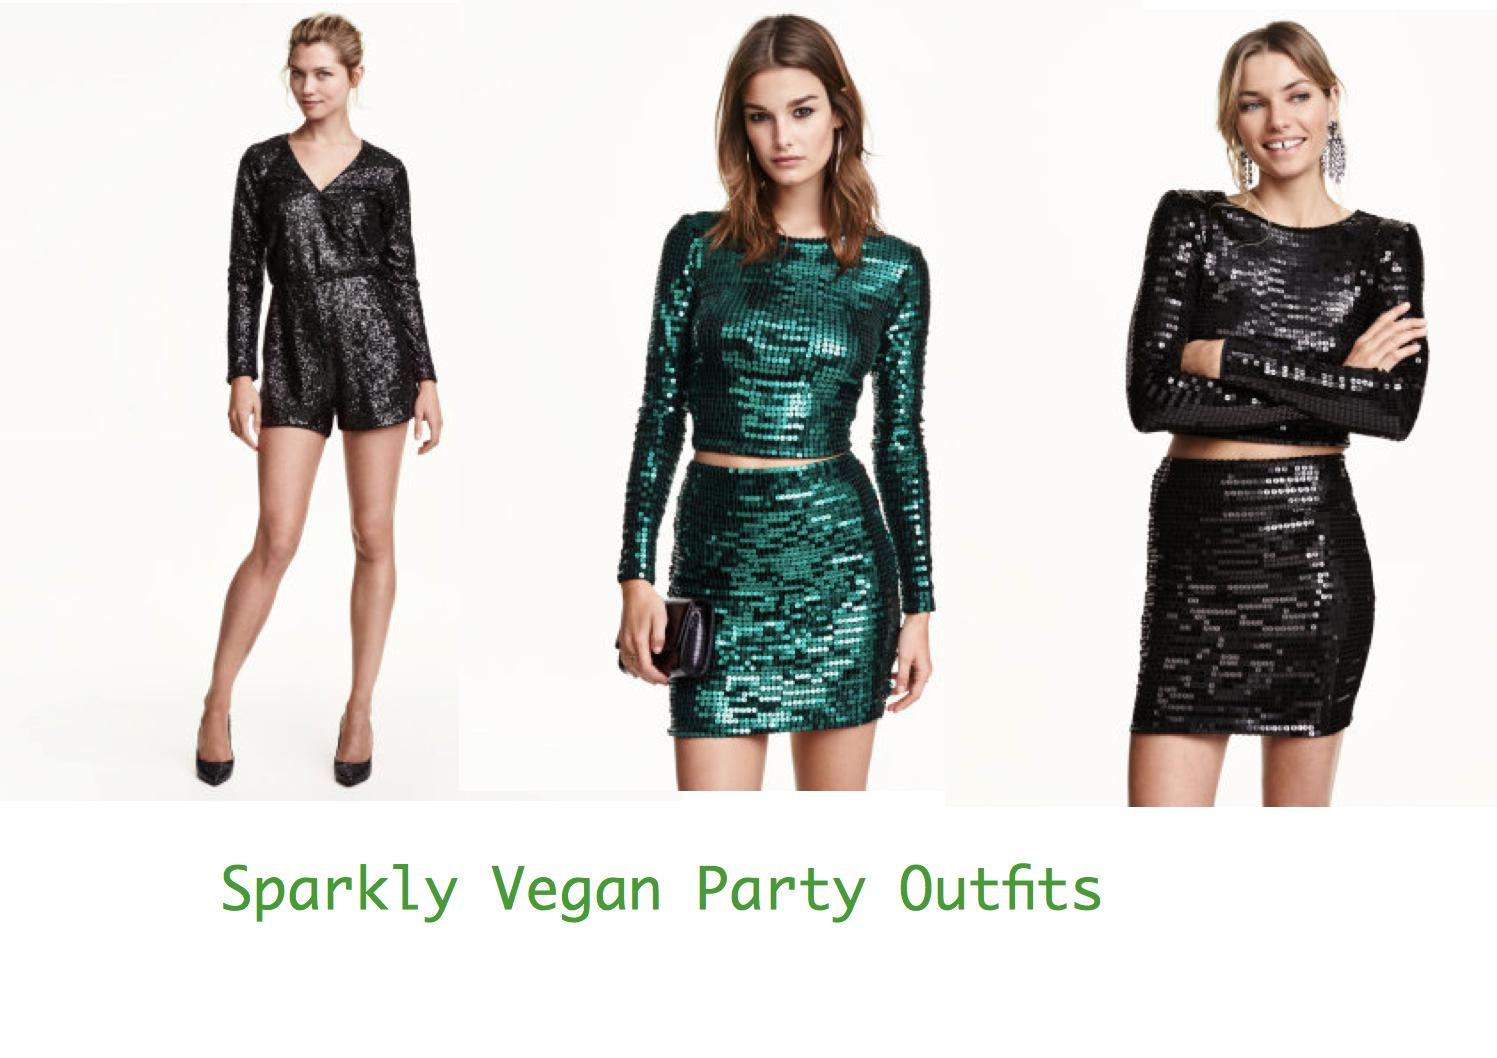 Vegan and Cruelty Free Party Outfits! - Camilla Kristiansen